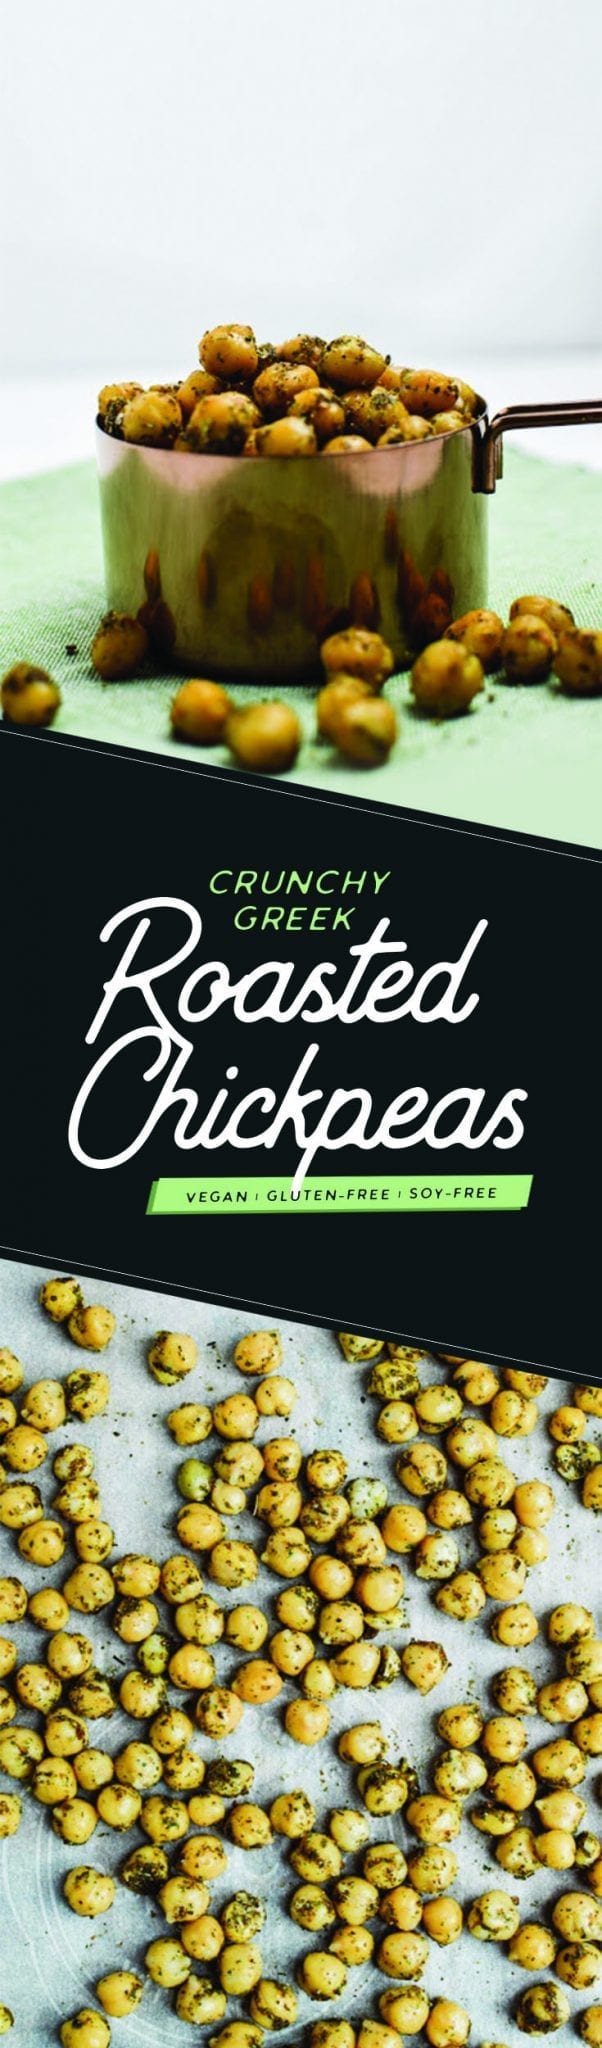 Easy and Crunchy Greek Roasted Chickpeas | Vegan | Gluten-Free | Soy-Free